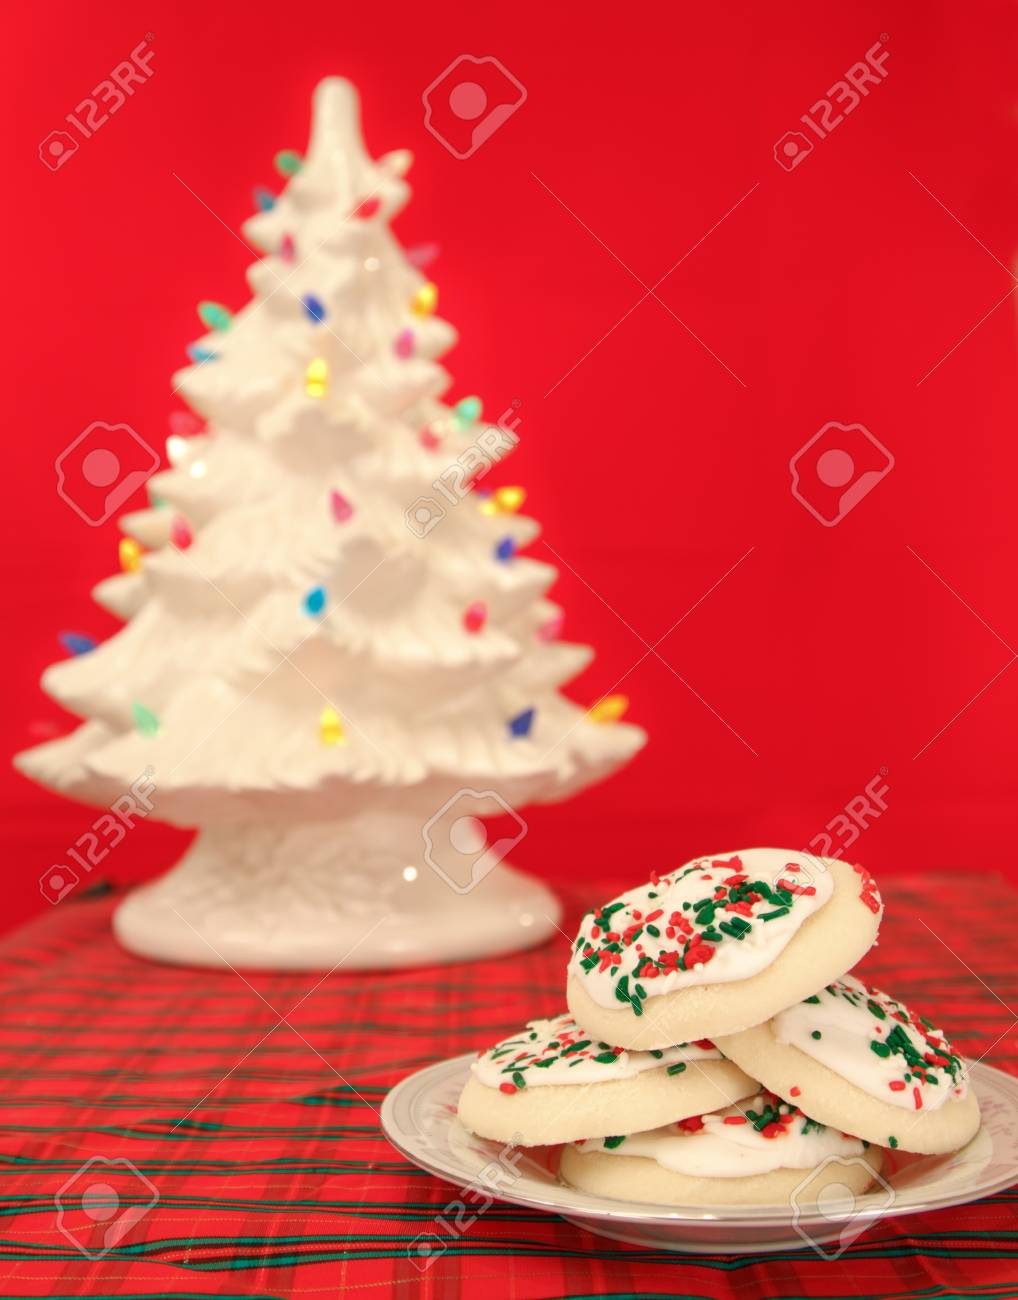 christmas holiday sugar cookies on a red background with a lit up ornamental tree blured in the back Stock Photo - 11536316